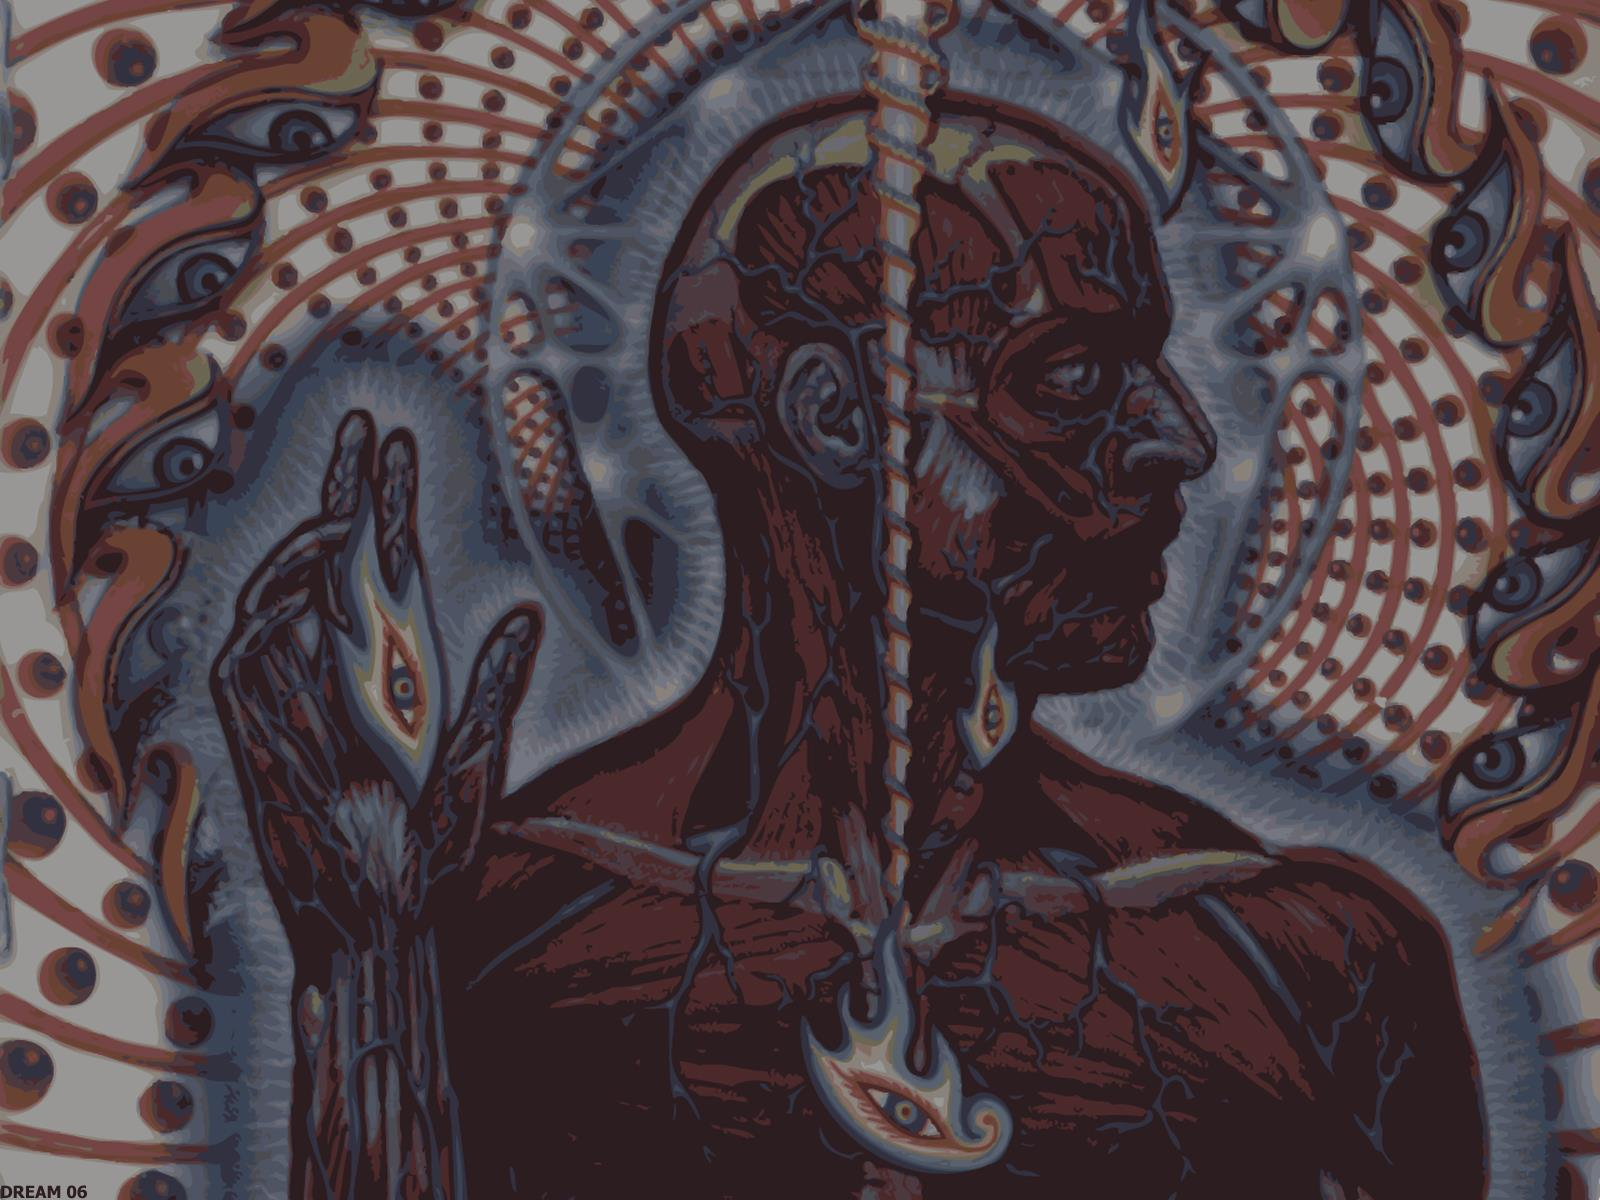 Alex Grey Wallpapers Group Tool Lateralus 2125166 Hd Wallpaper Backgrounds Download